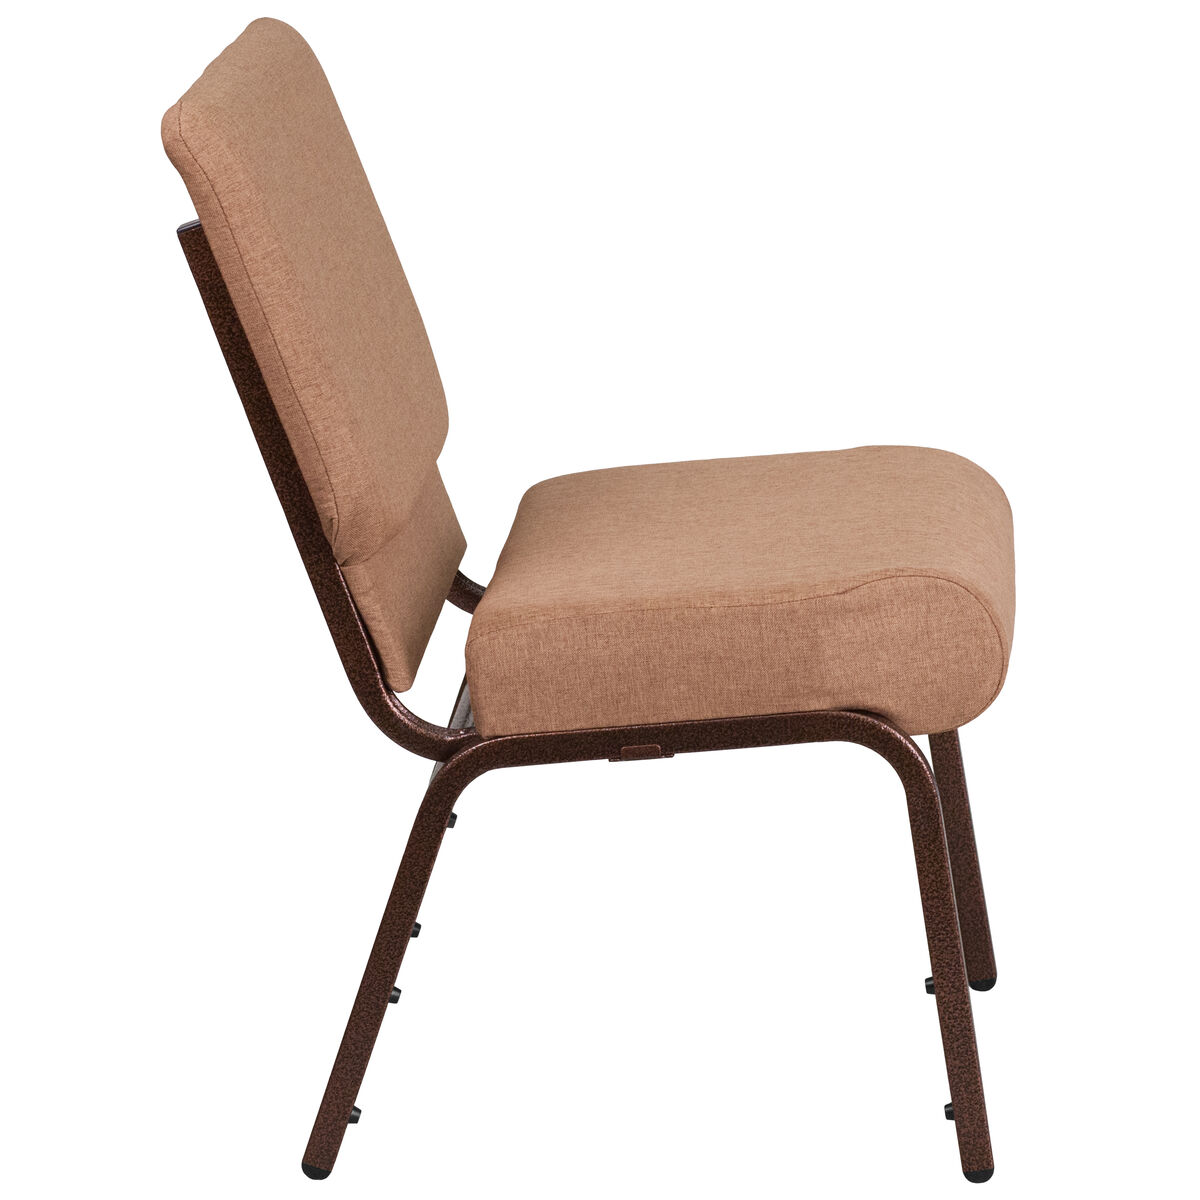 hercules series 21 u0026 39  u0026 39 w stacking church chair in caramel fabric - copper vein frame